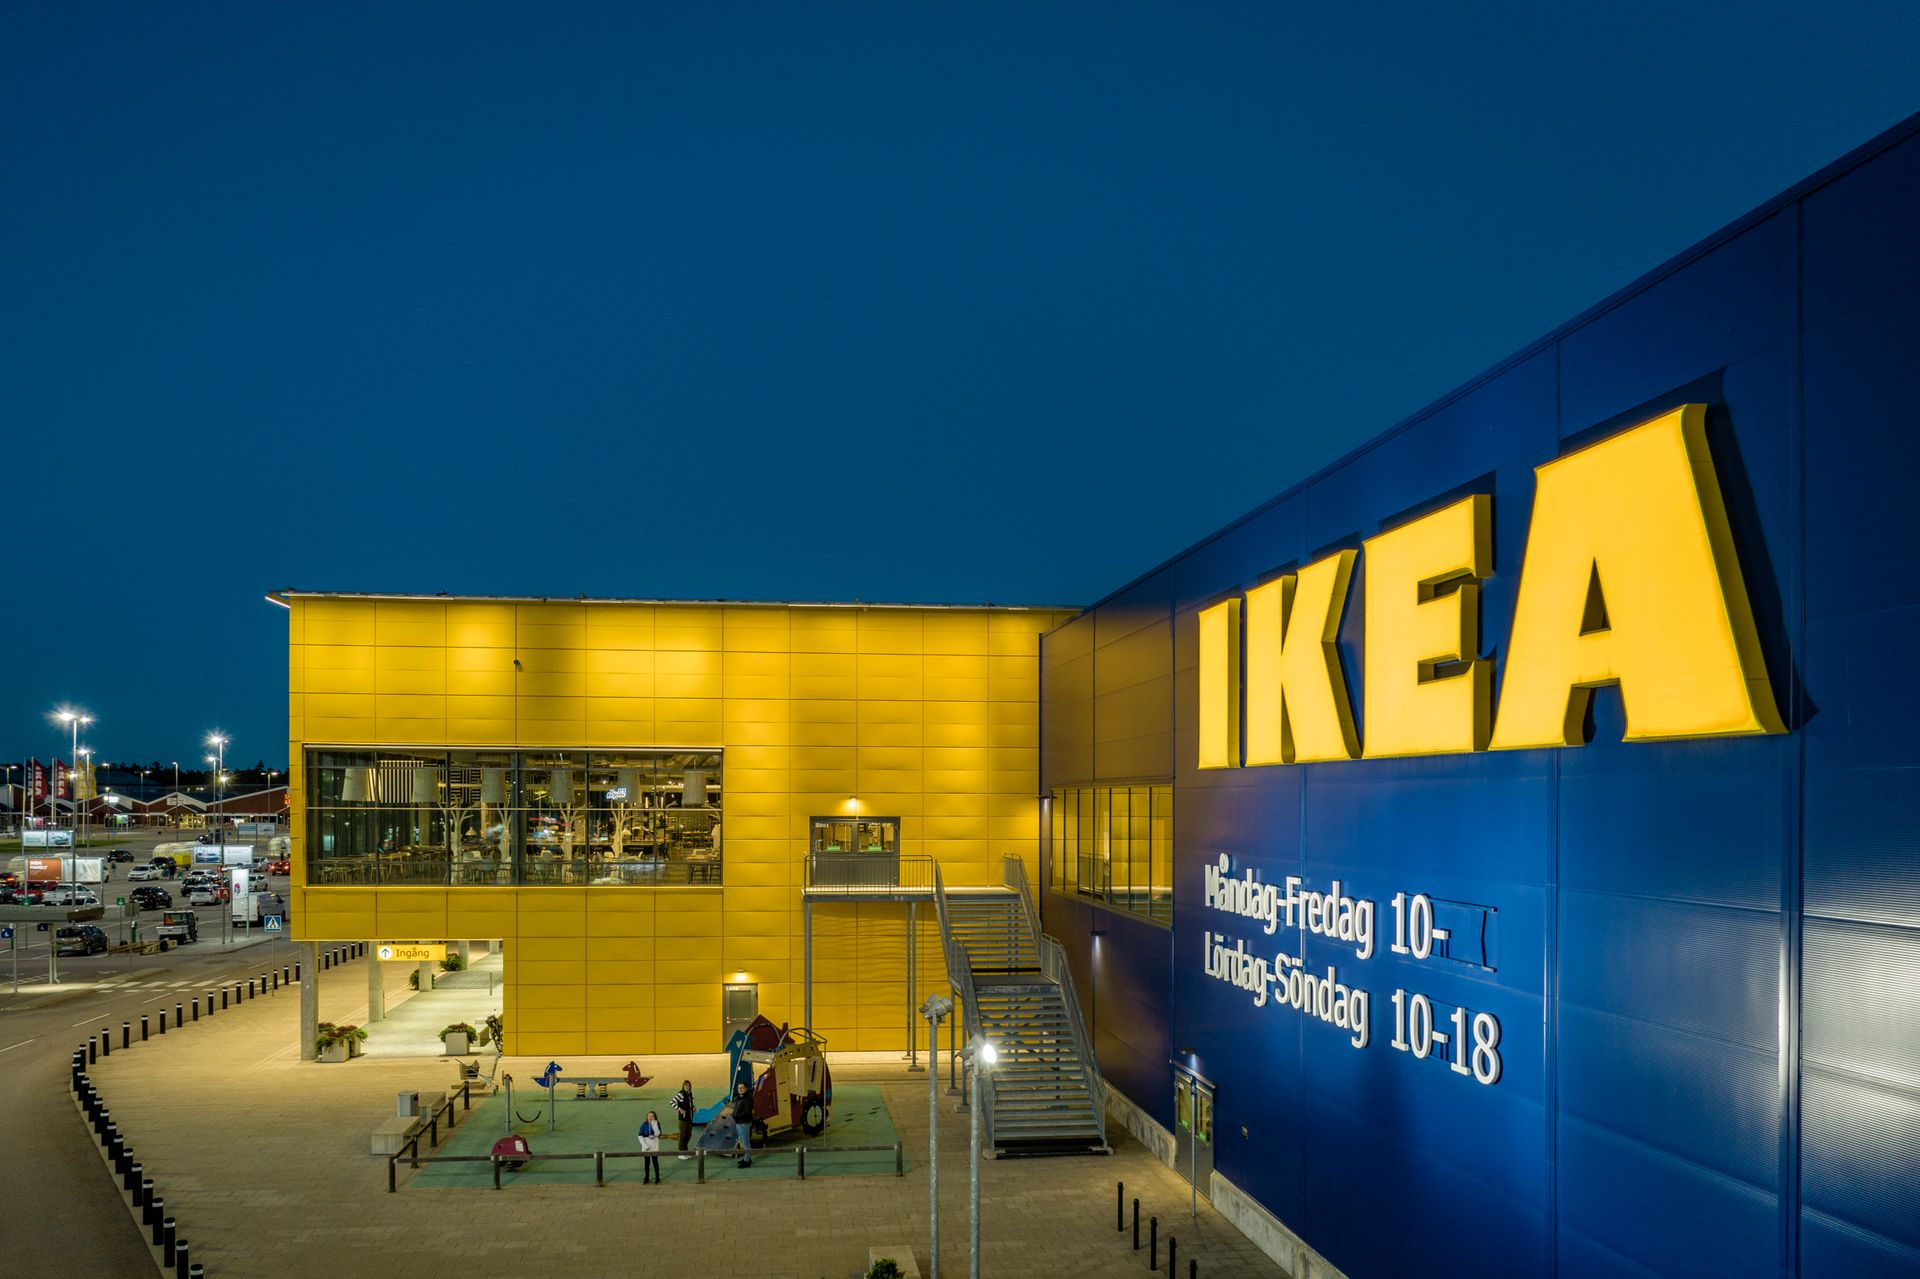 A large building in blue and yellow with IKEA written on it.